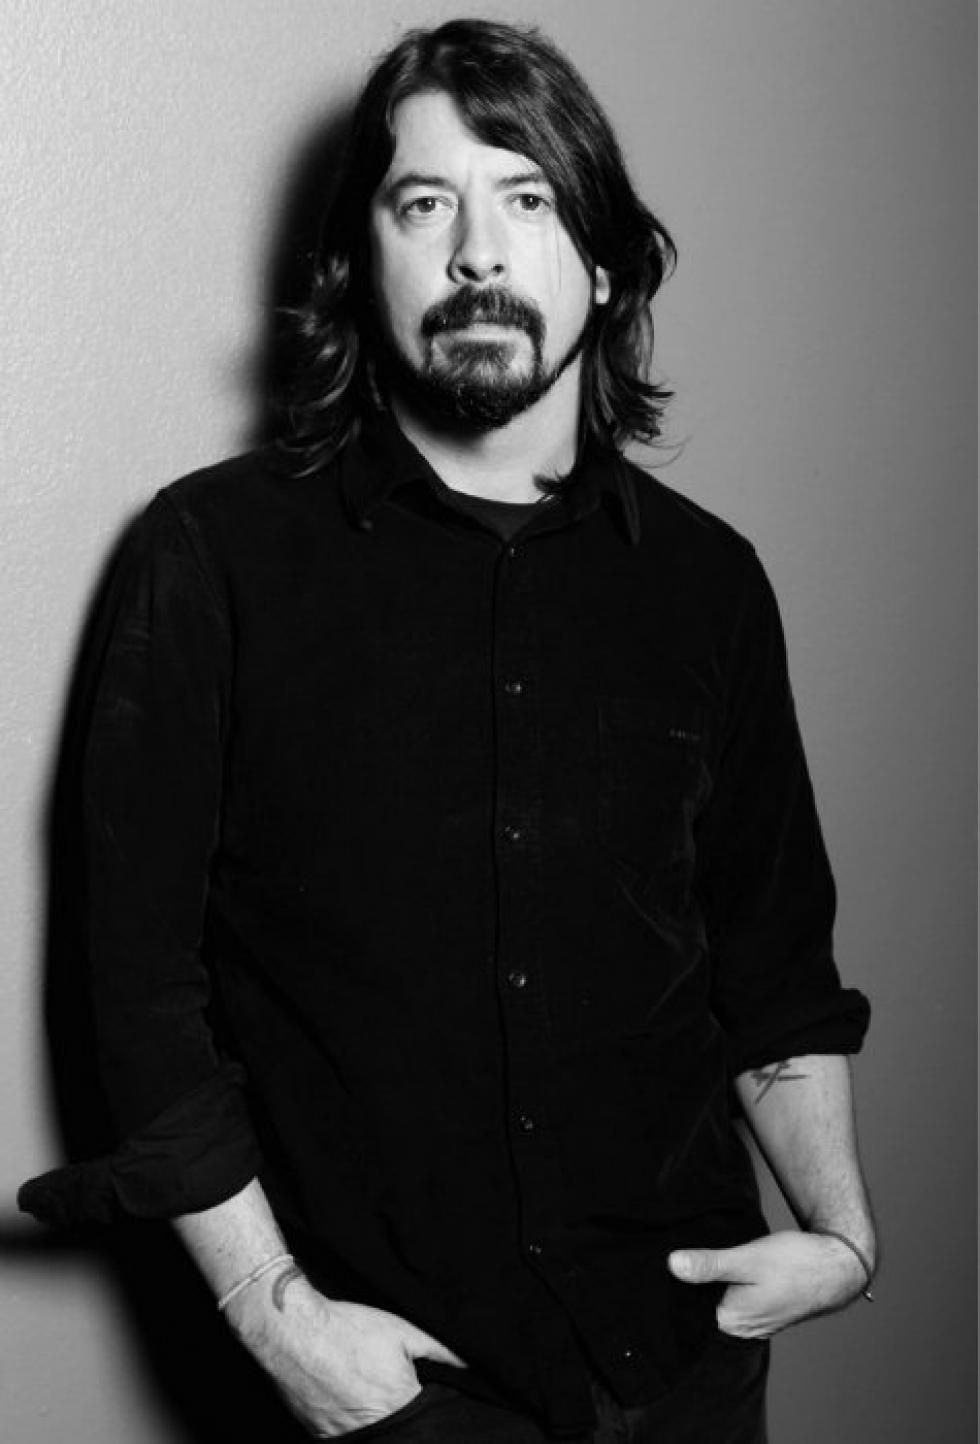 Dave Grohl - Foo Fighters/Nirvana